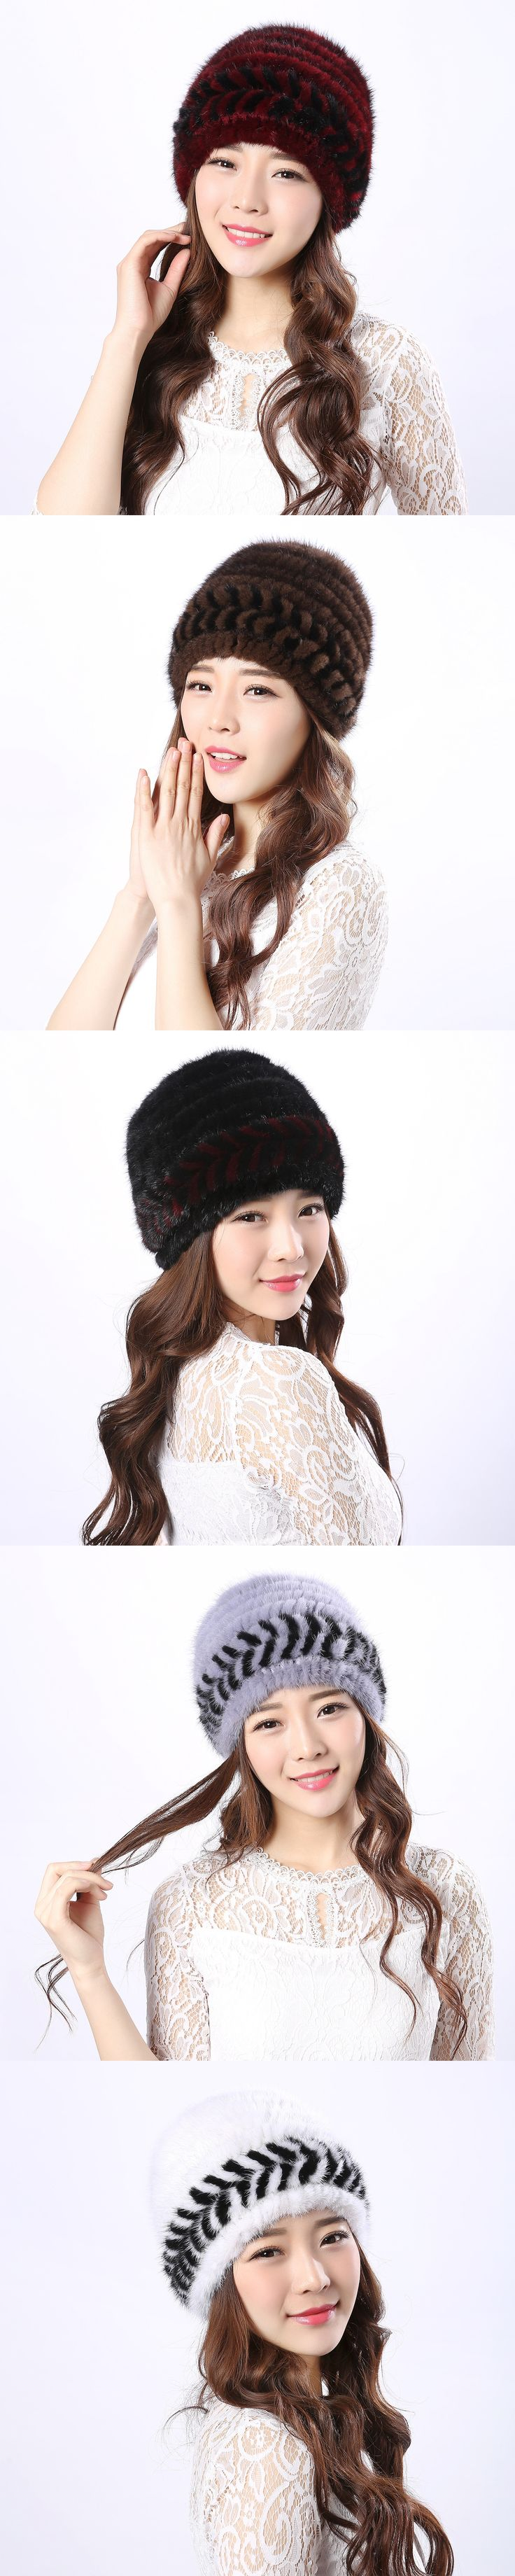 2017 new  winter genuine real Mink Fur  Lady Hat fashion warming thicking ear cap girl friends gift giving